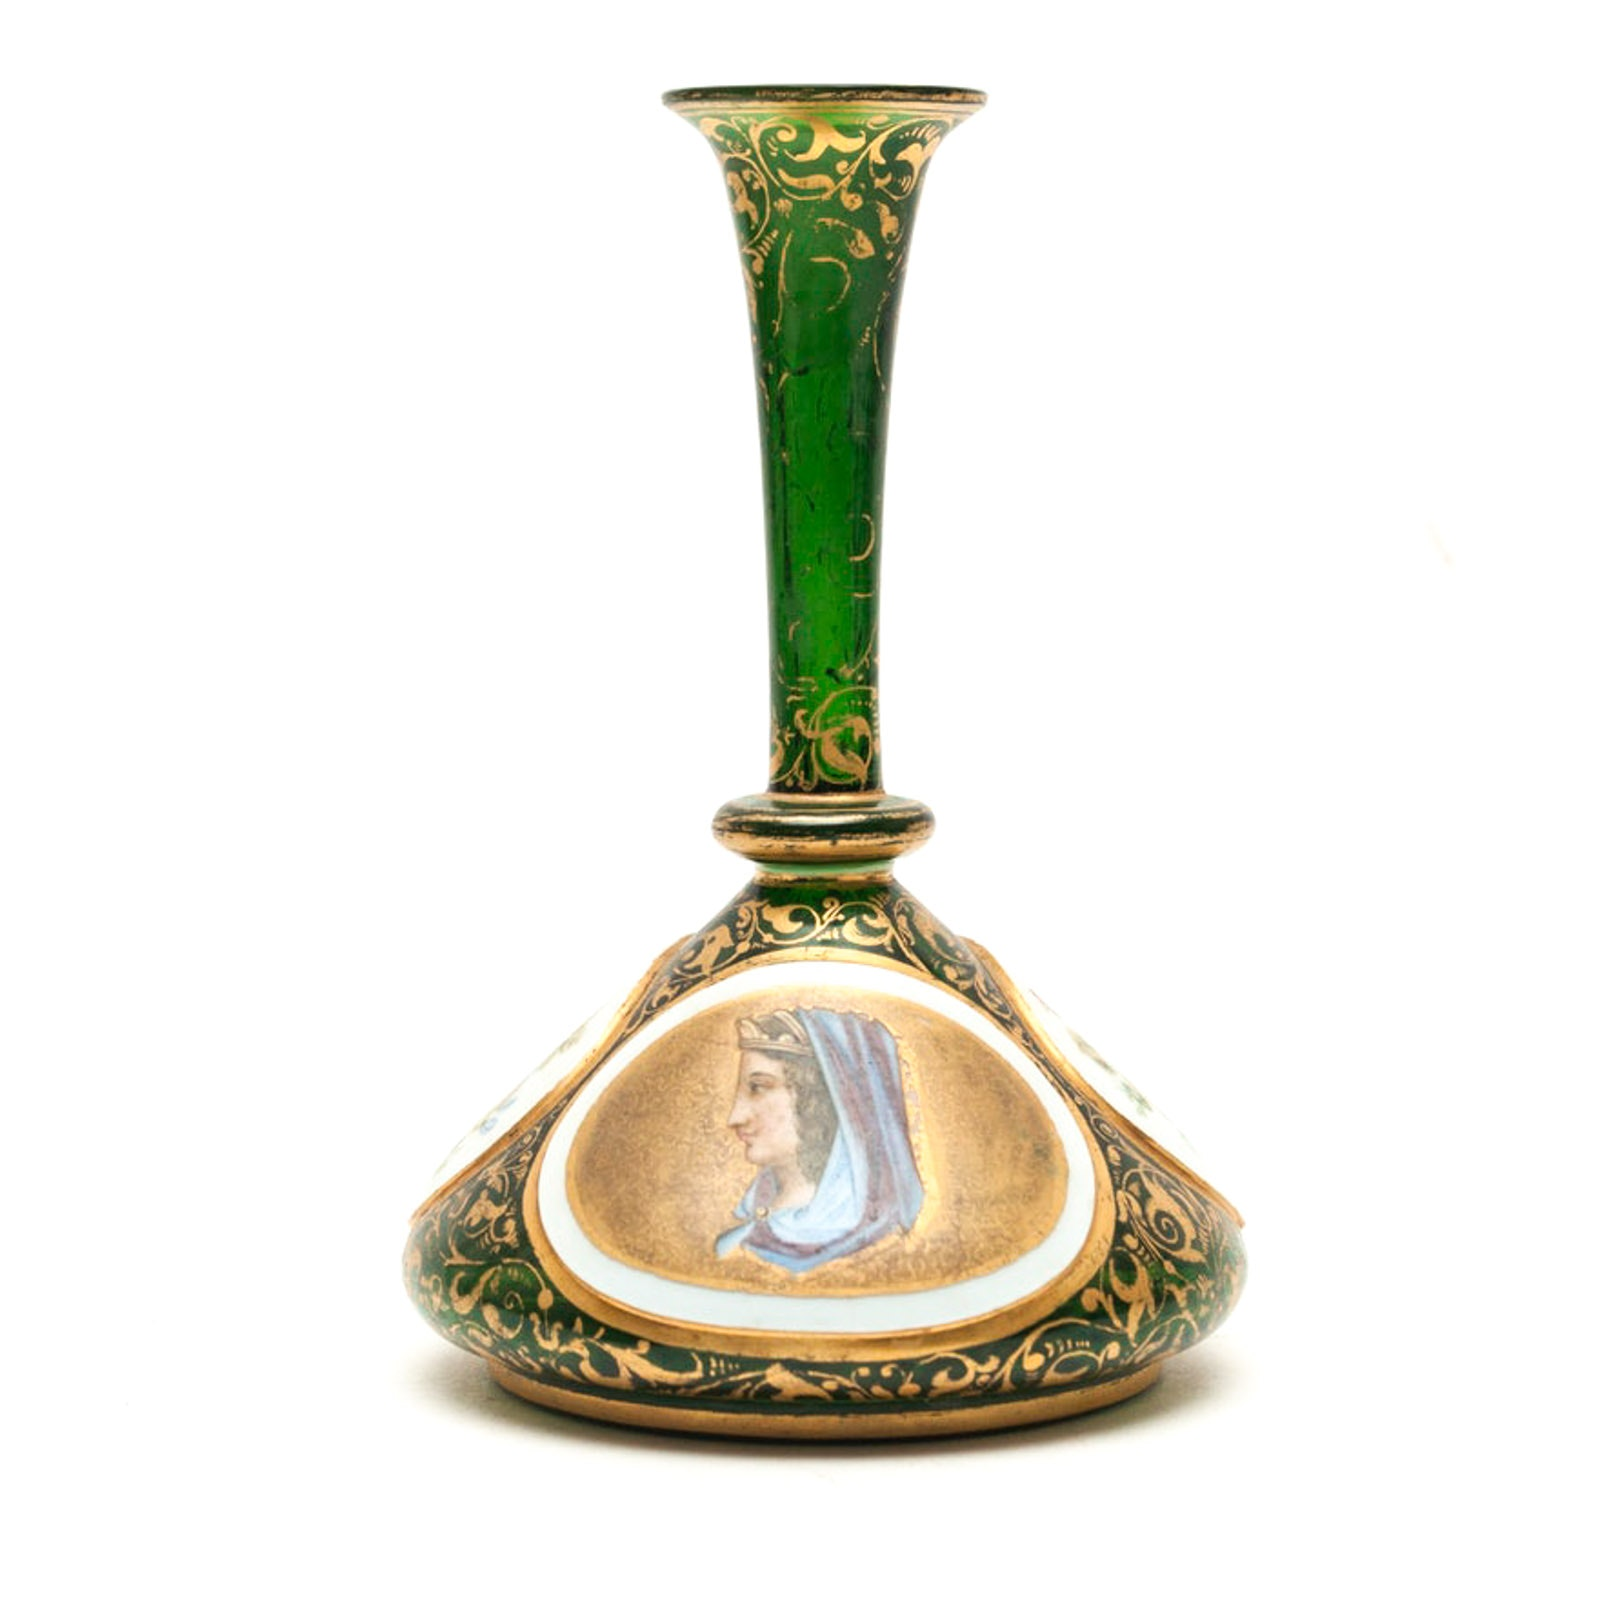 Bohemian Glass Portrait Vase with Enamel Accents